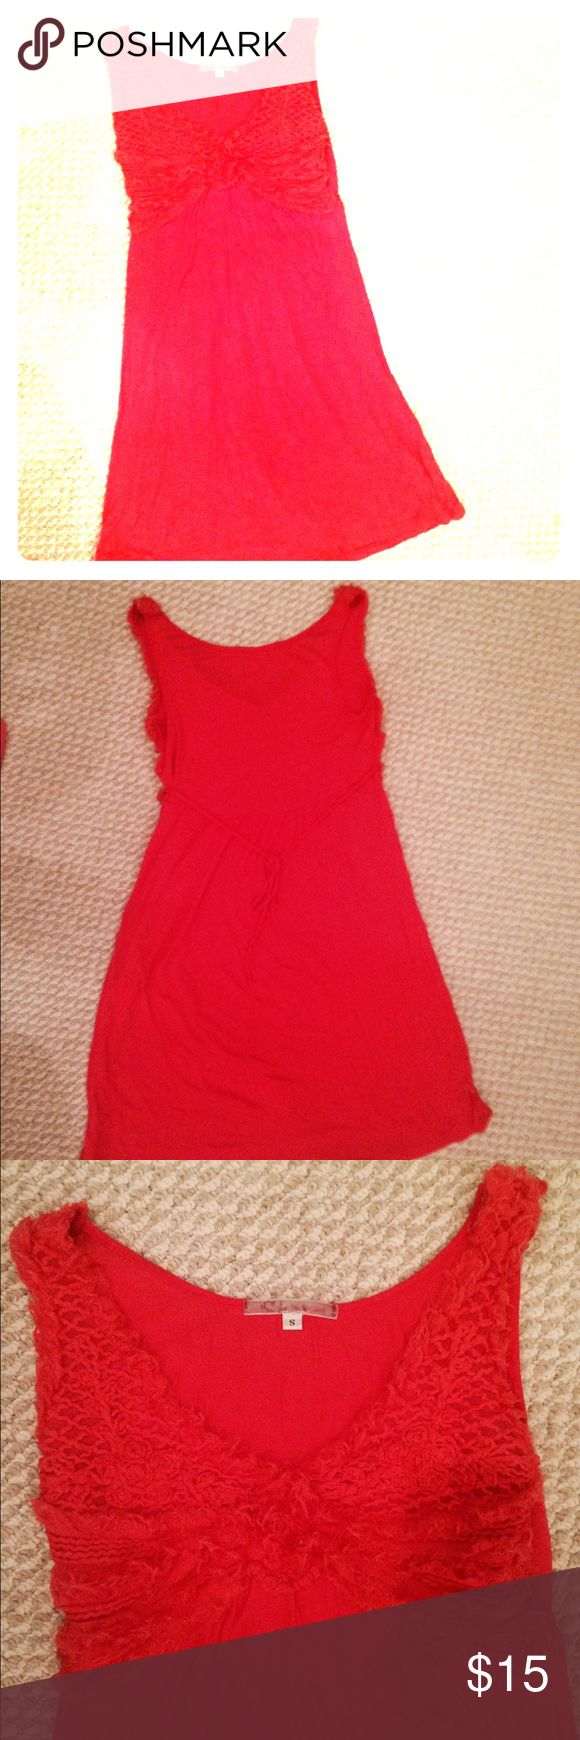 Coral lace This dress is very soft and comfortable with give in the fabric.  The front chest area is lace and ties in the back.  Perfect as a sundress or at the beach! Dresses